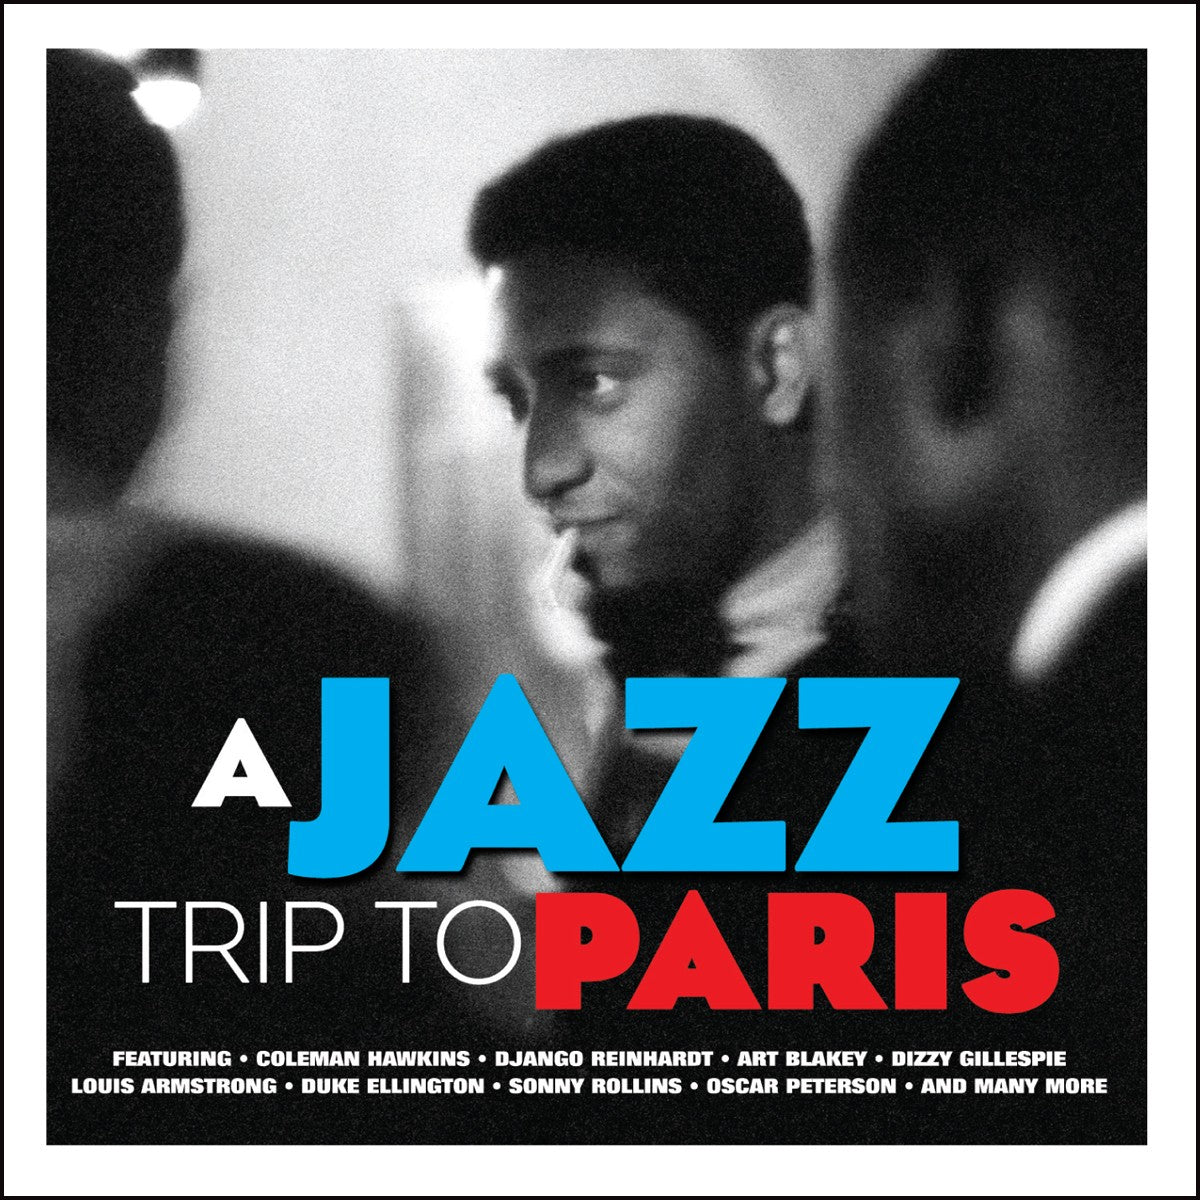 A JAZZ TRIP TO PARIS (2 CDS)